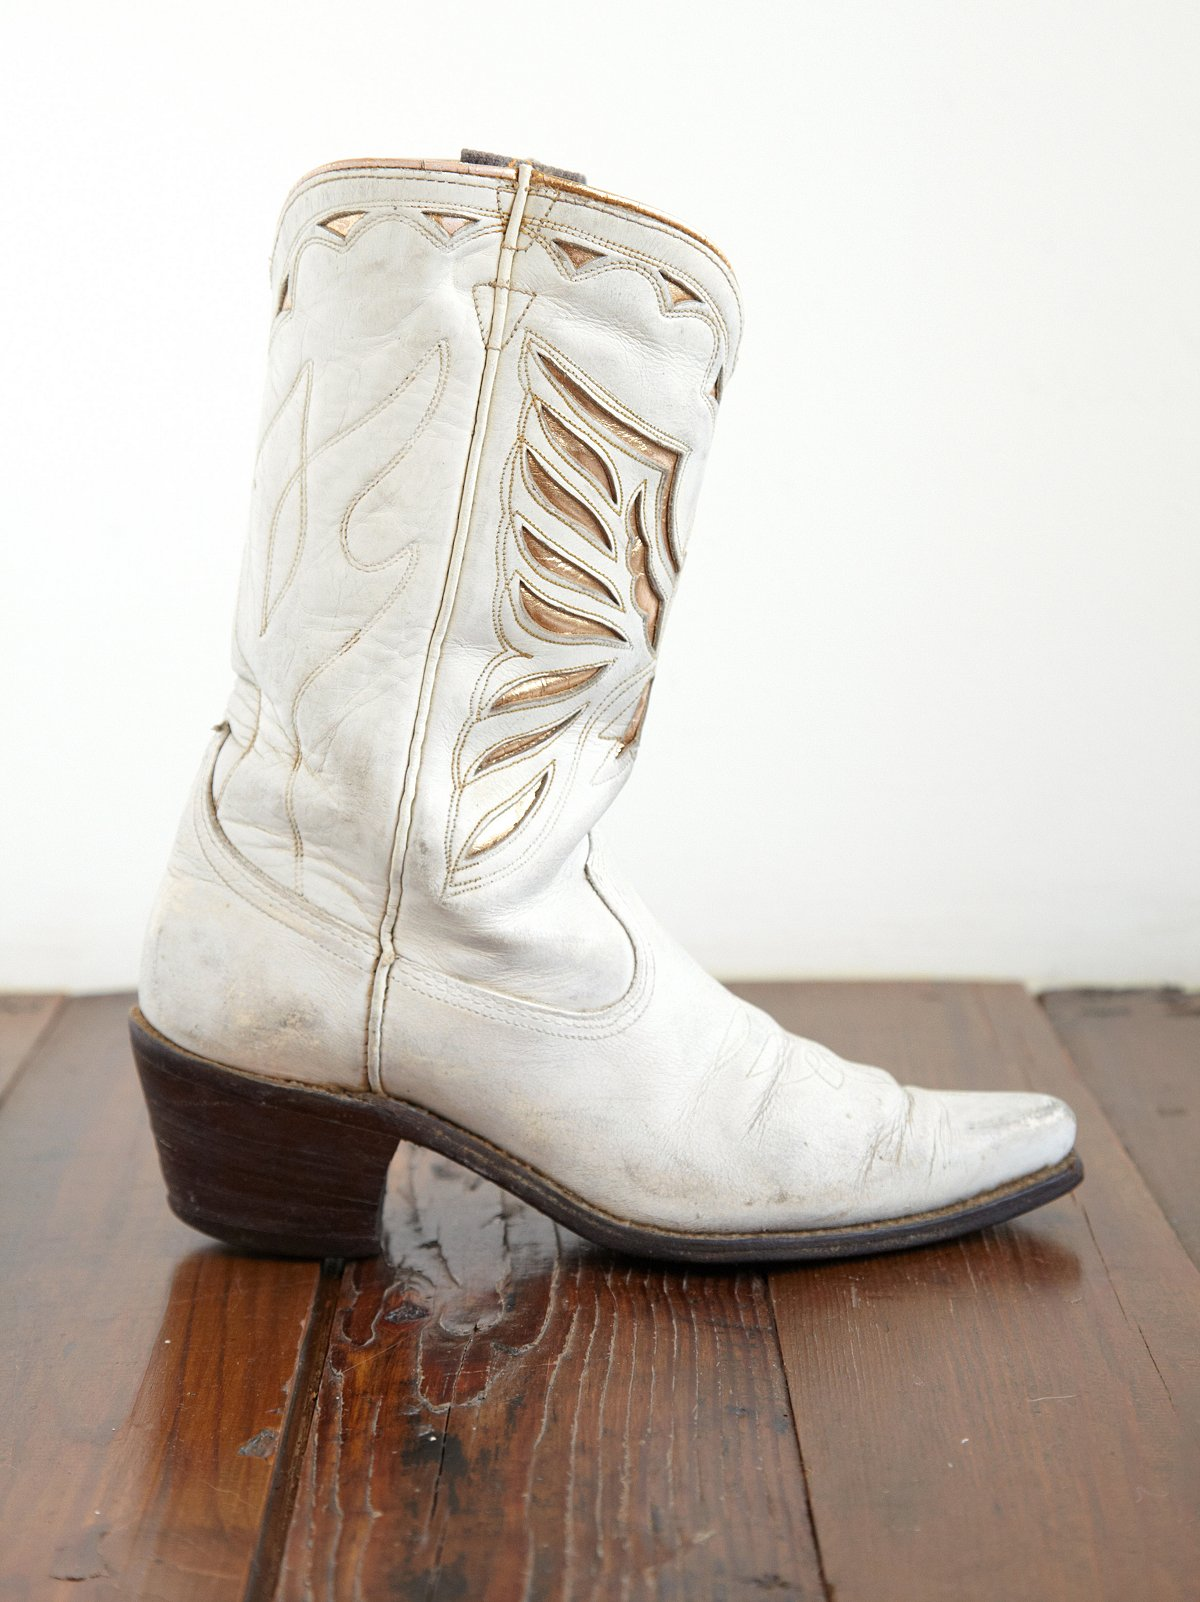 Vintage Angel Wing Cowboy Boots